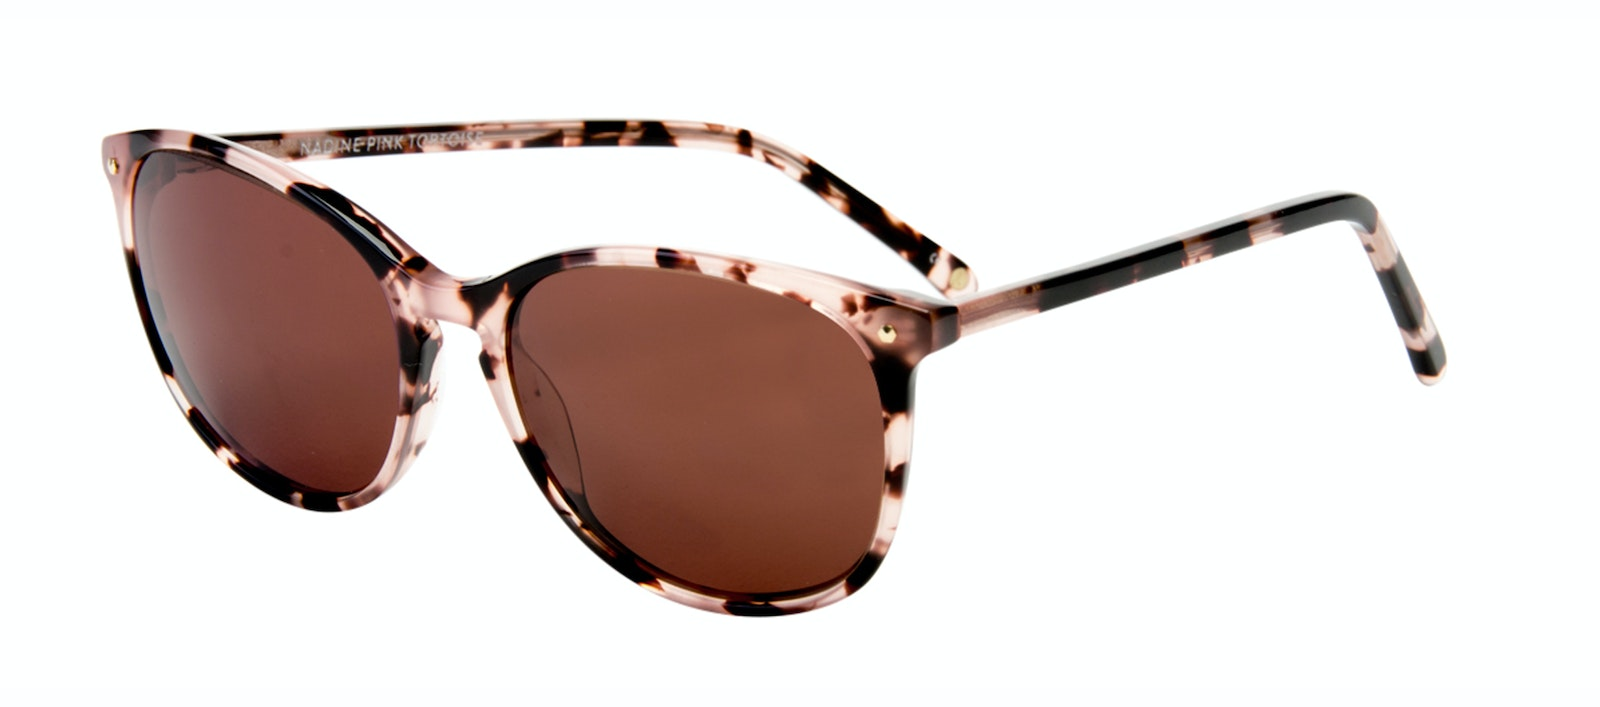 Affordable Fashion Glasses Rectangle Square Round Sunglasses Women Nadine Pink Tortoise Tilt